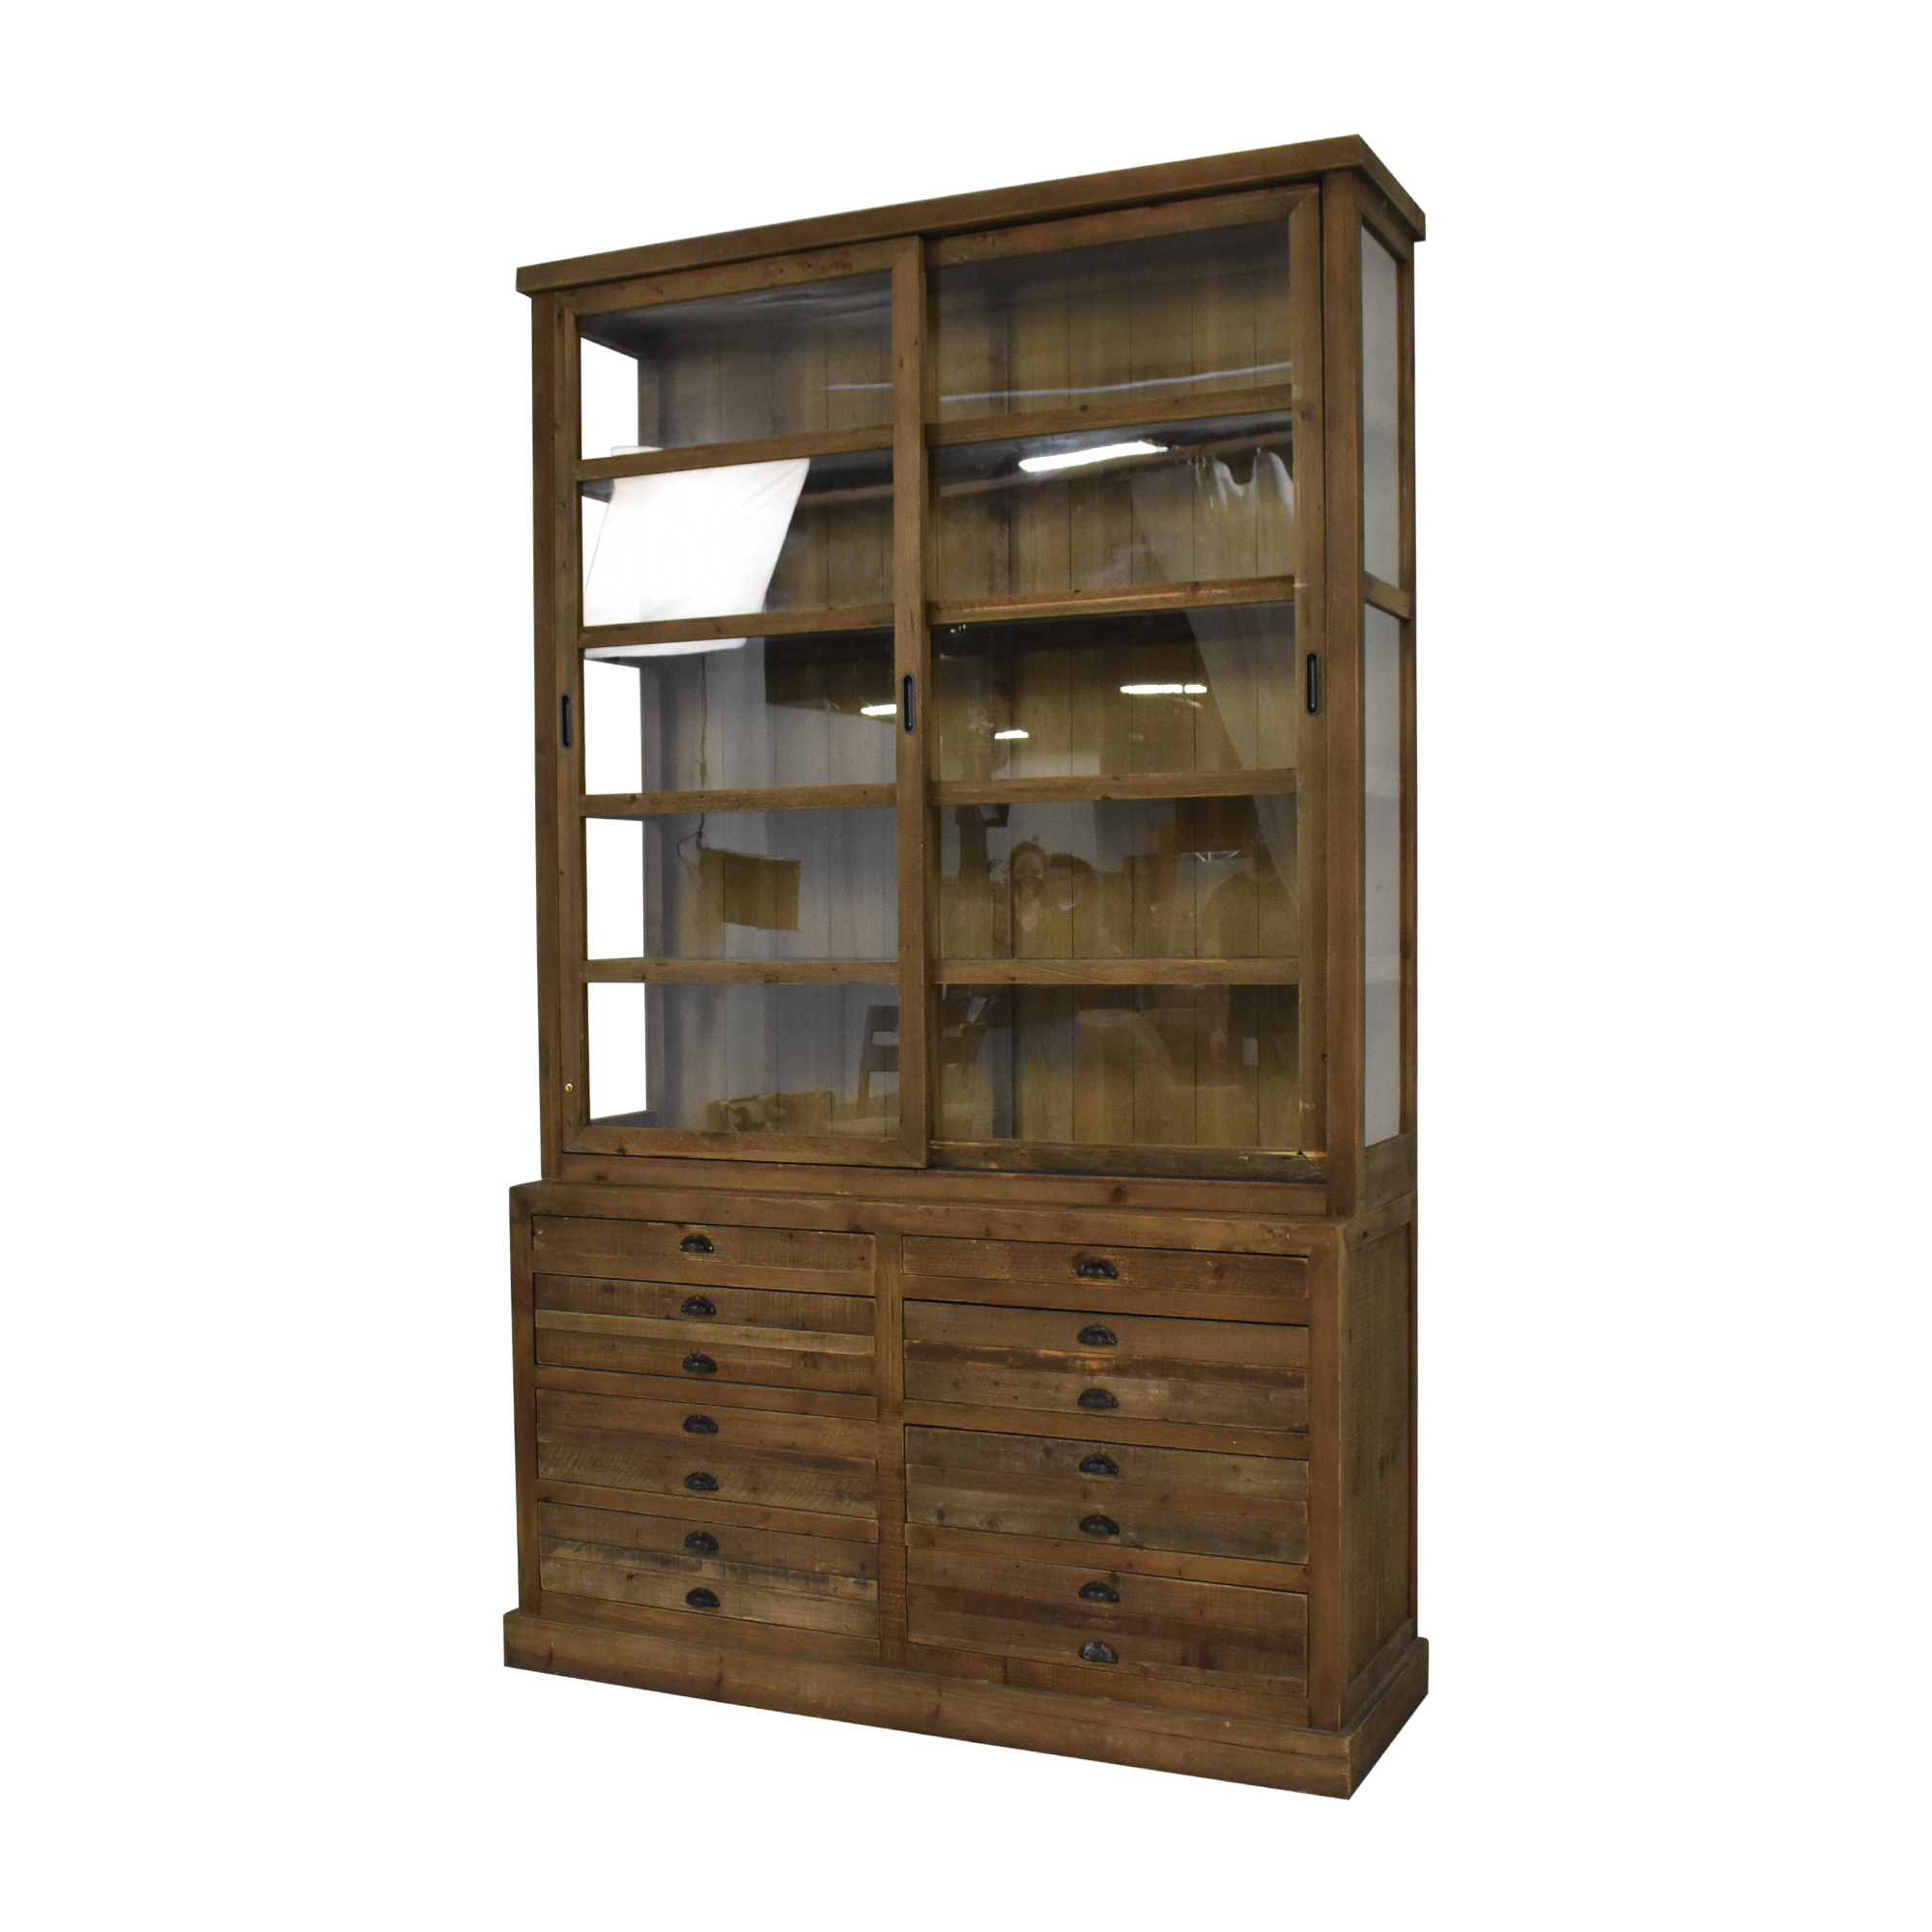 buy Restoration Hardware Restoration Hardware Printmaker's Sideboard and Hutch online